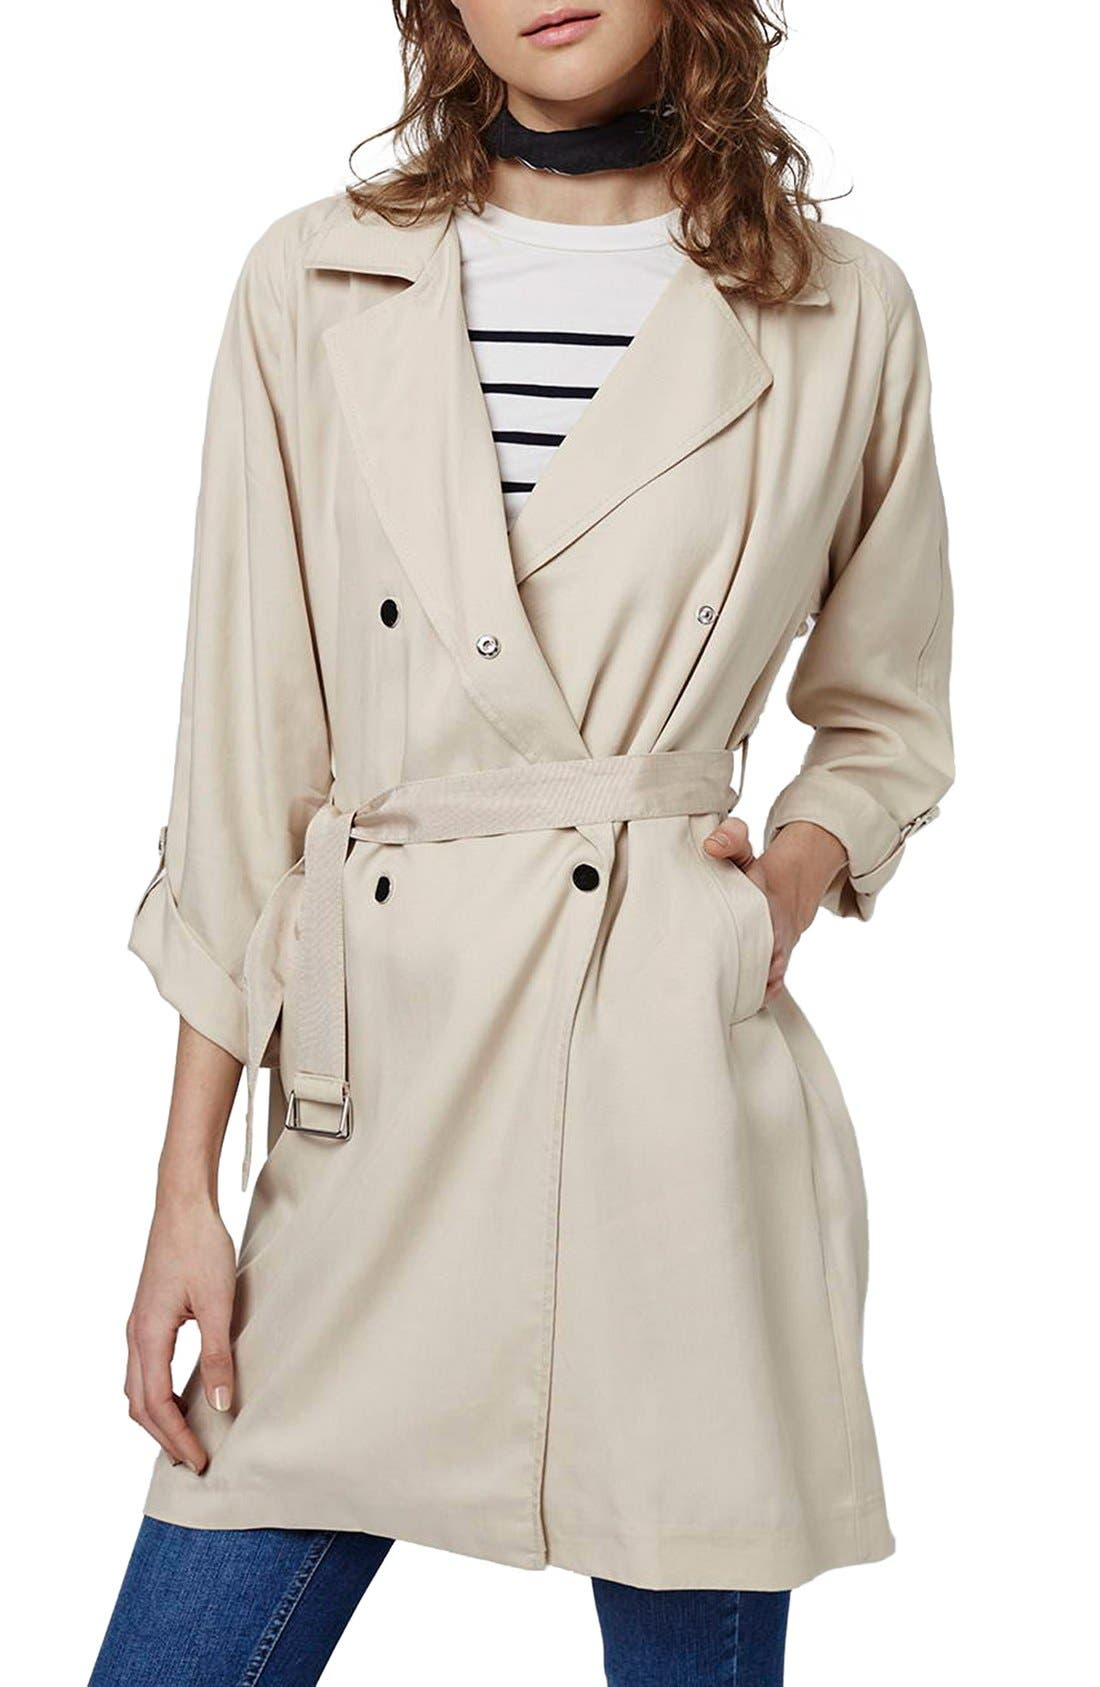 Main Image - Topshop Textured Double Breasted Coat